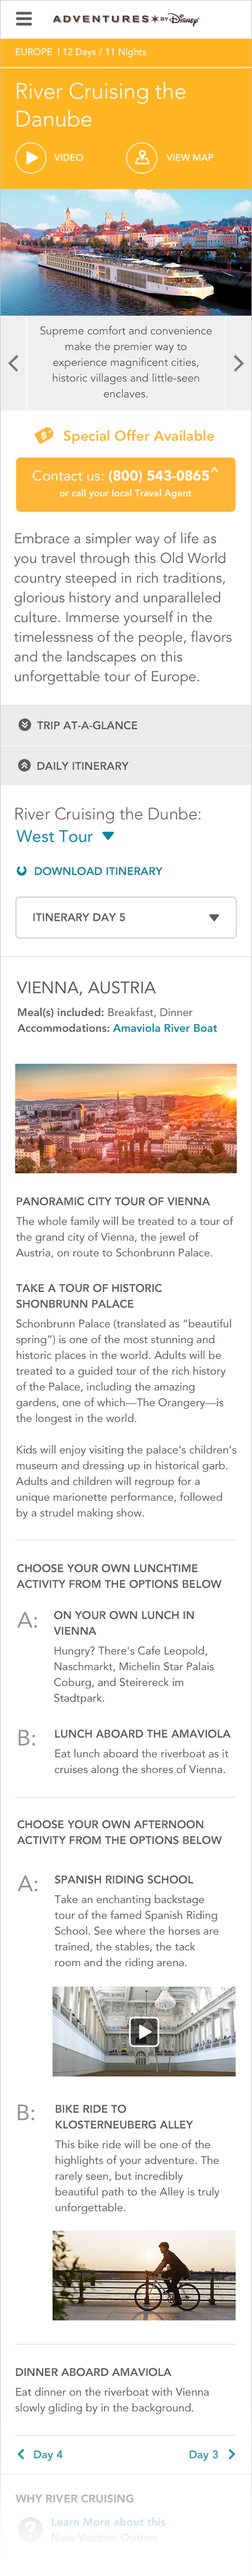 mobile-Itinerary-RiverCruise-trim.png